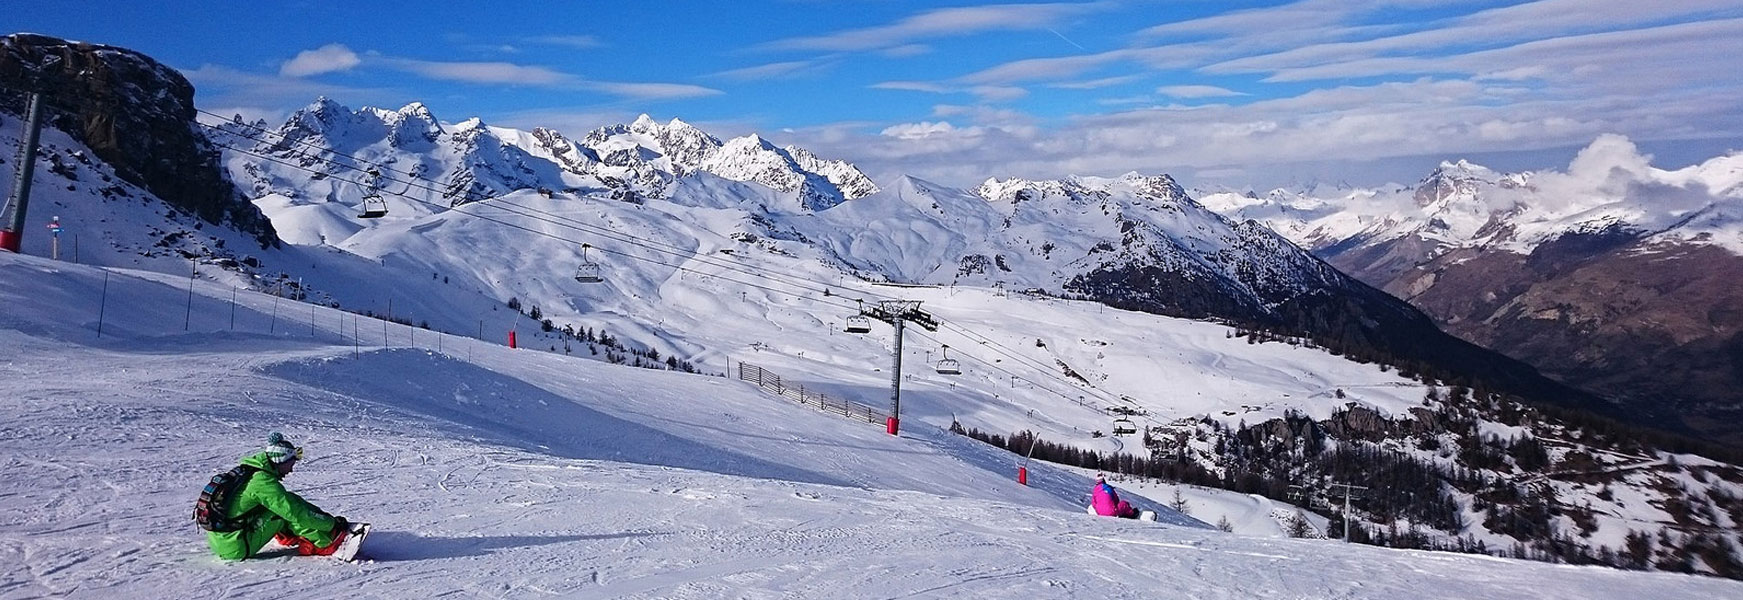 Location Ski Intersport Monetier Serre Chevalier 1500